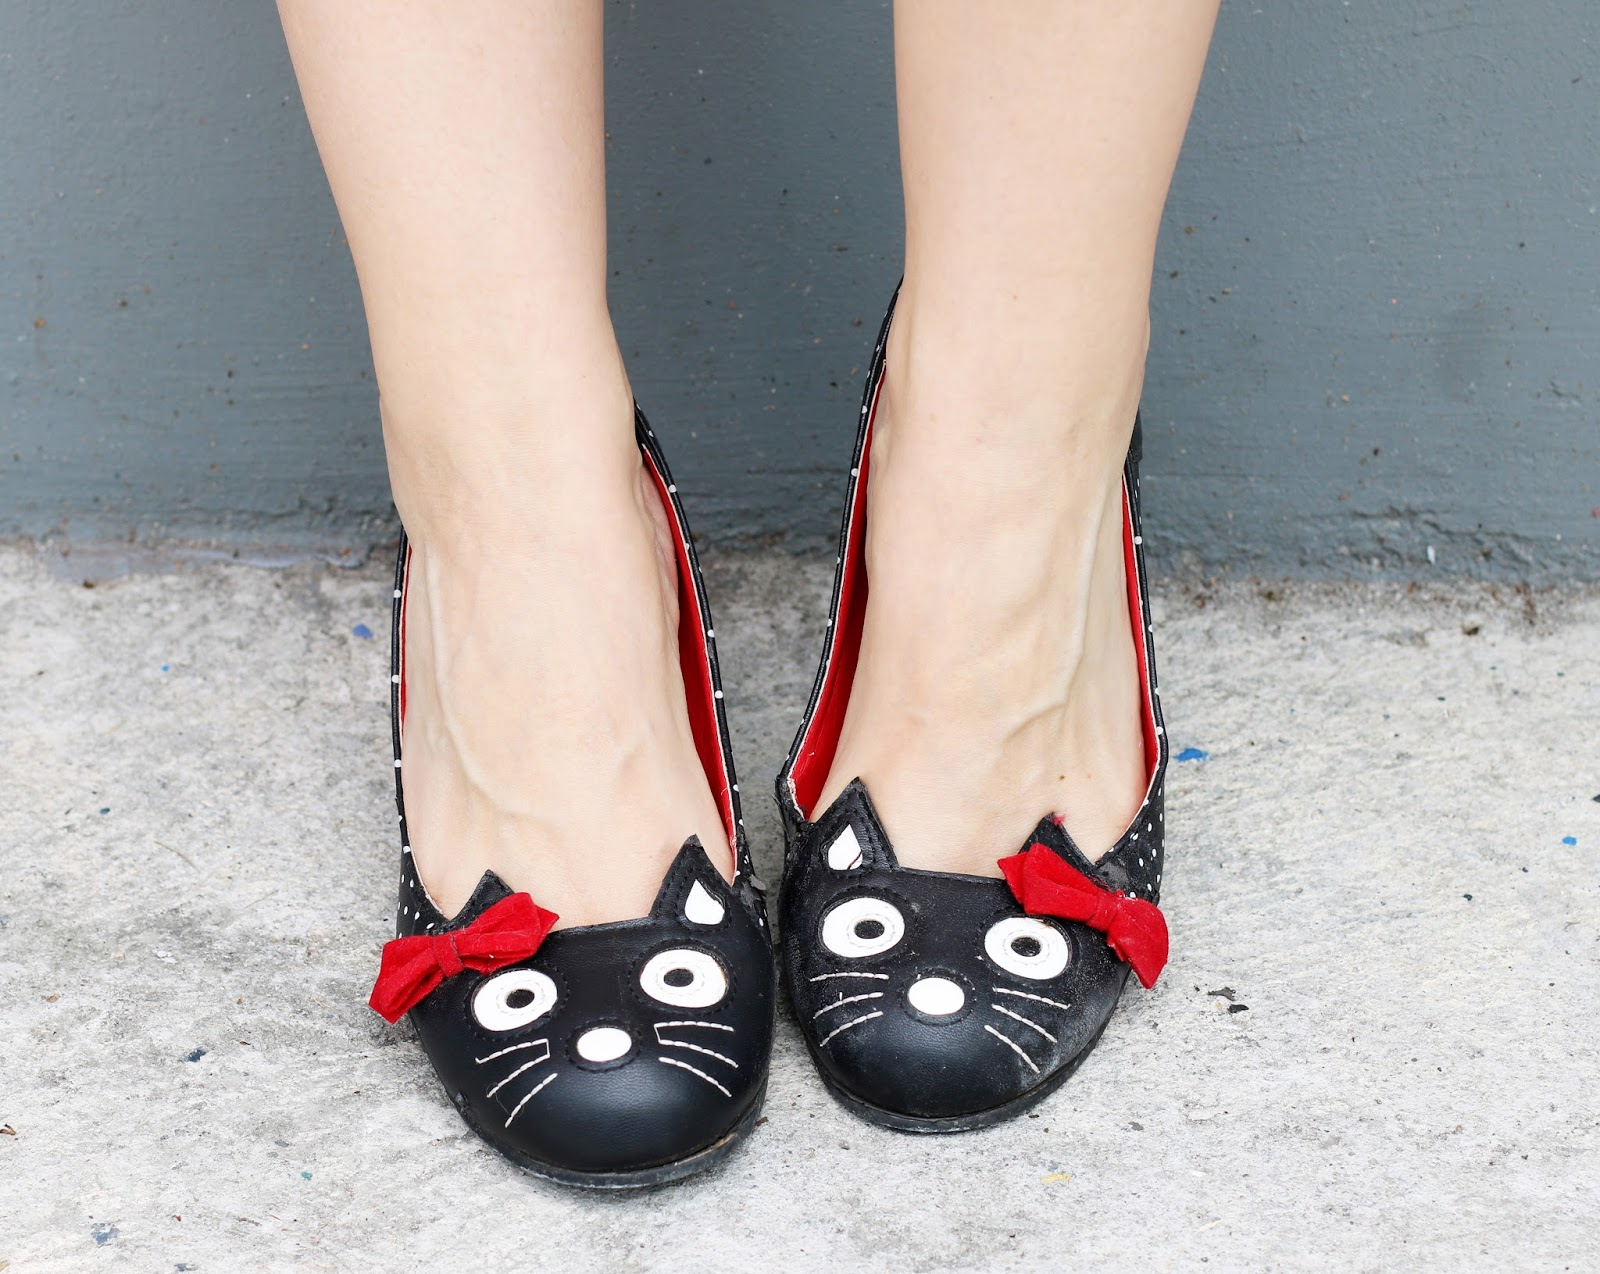 The cutest cat shoes ever!